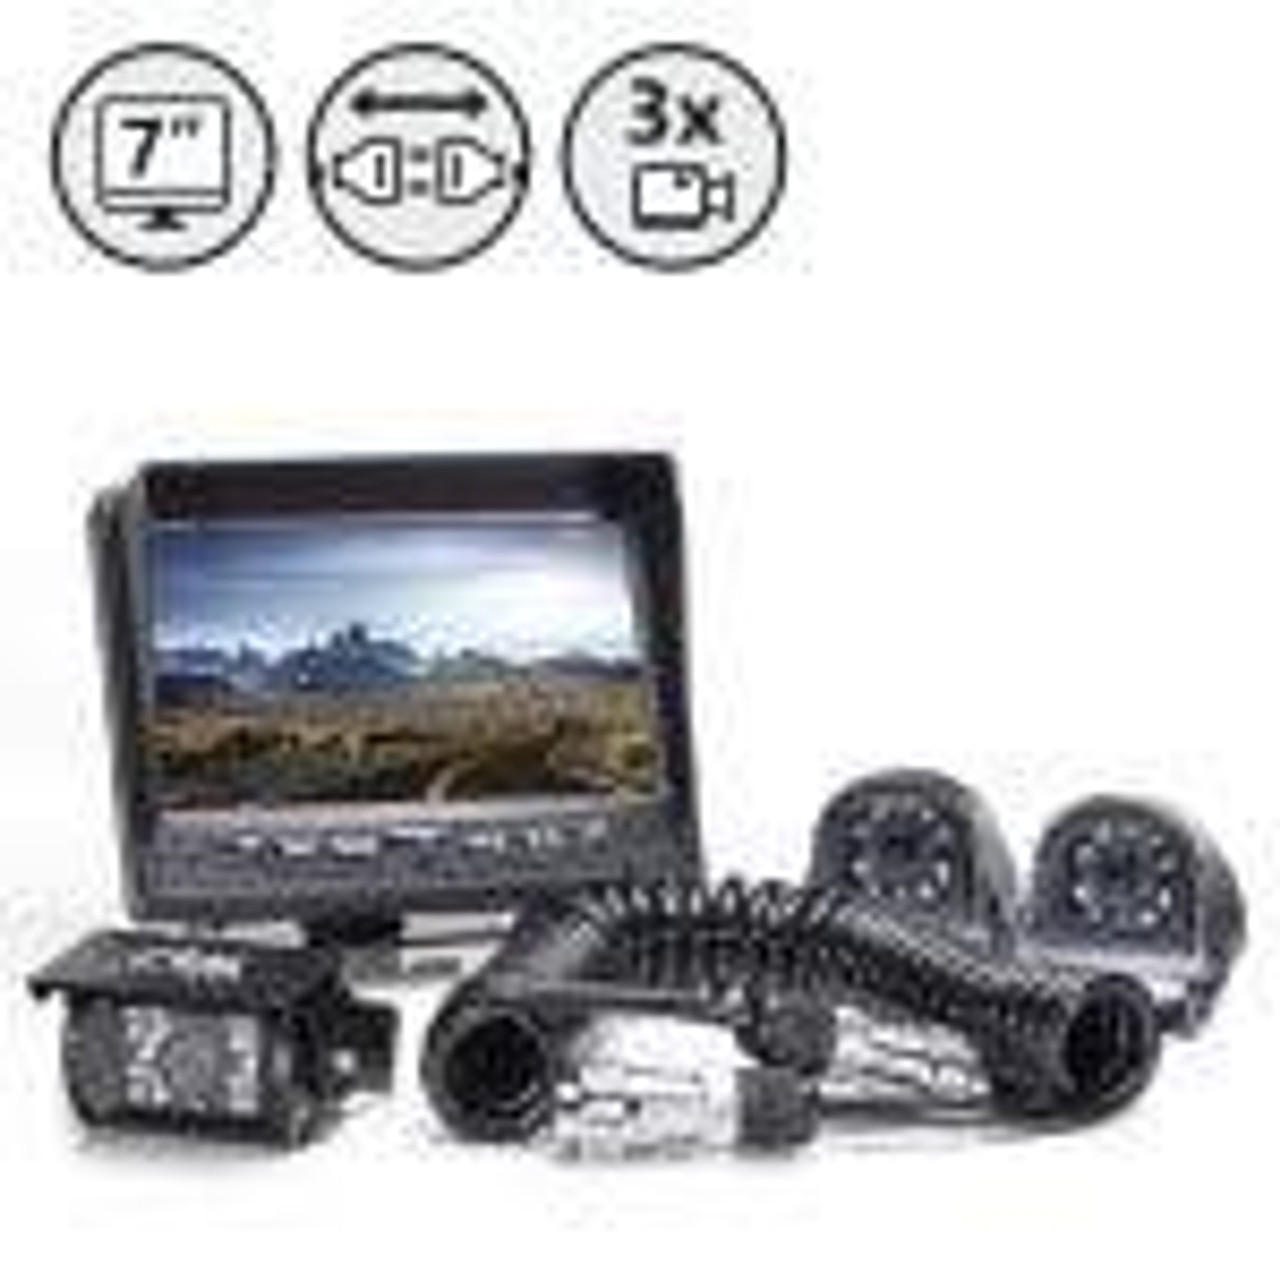 Backup Camera System with Side Cameras and Multi-Camera Quick Connect KIT (RVS-770616-2133-NM)